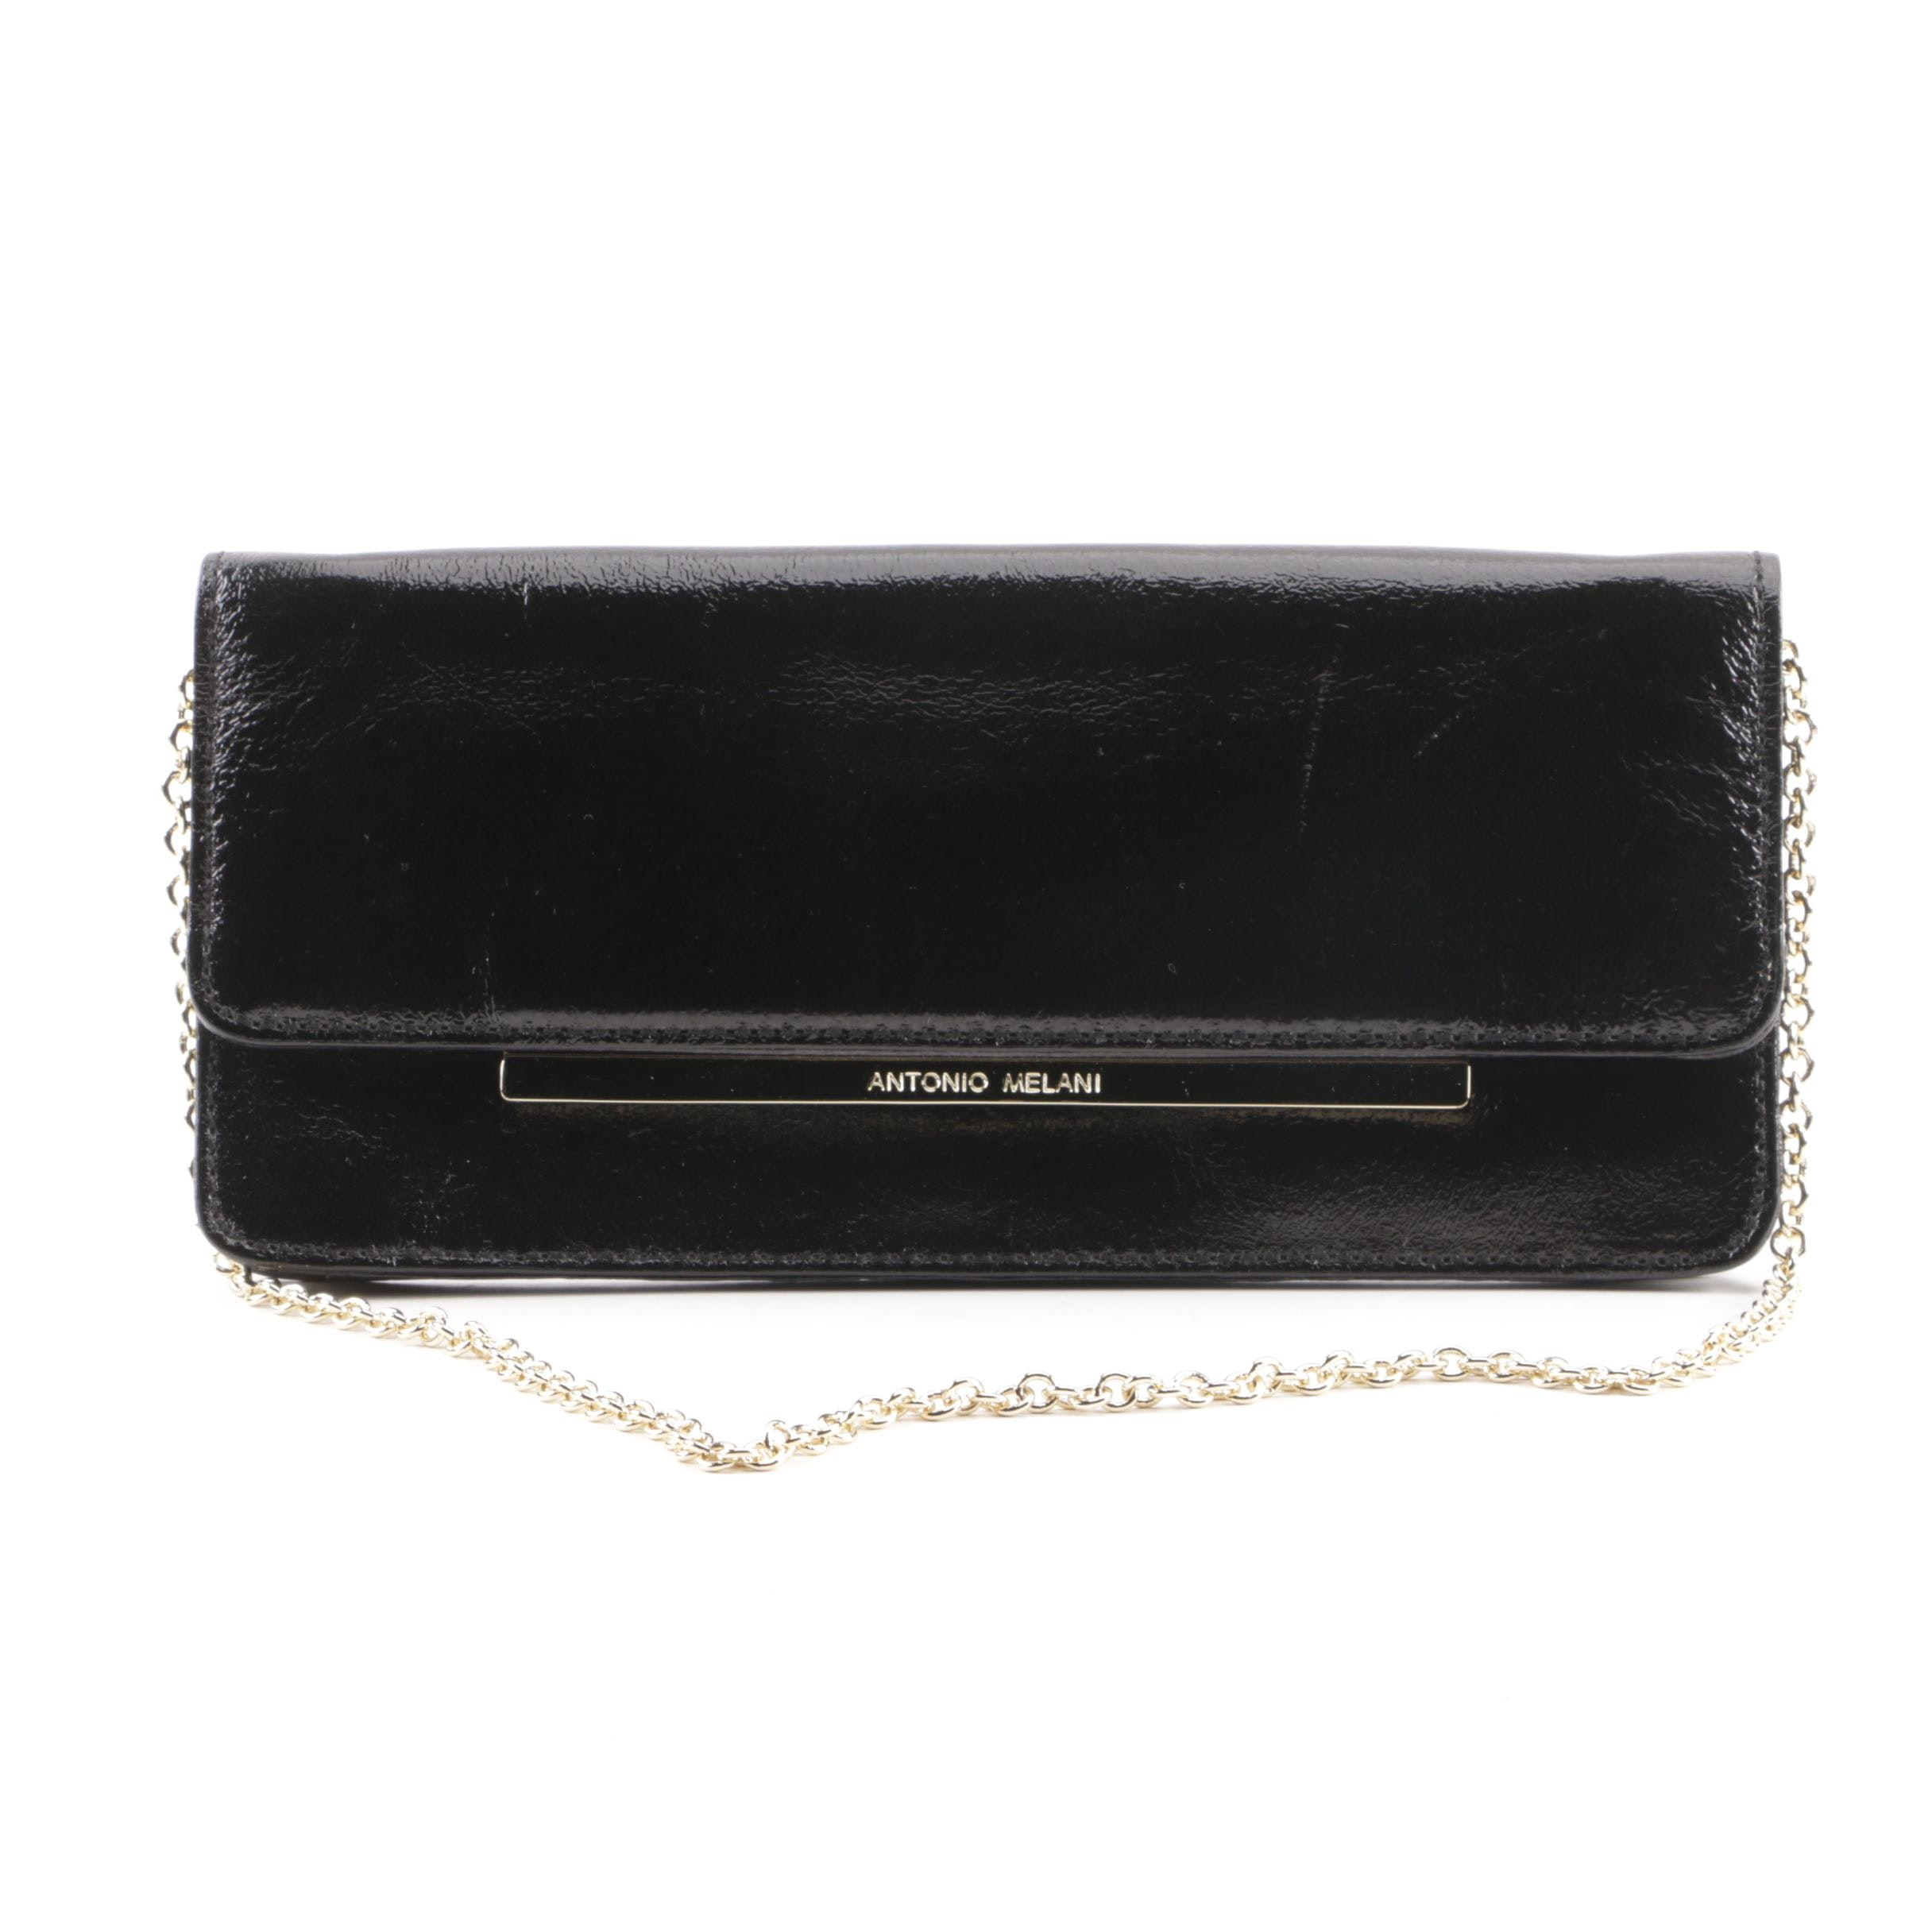 Antonio Melani Black Coated Canvas Clutch